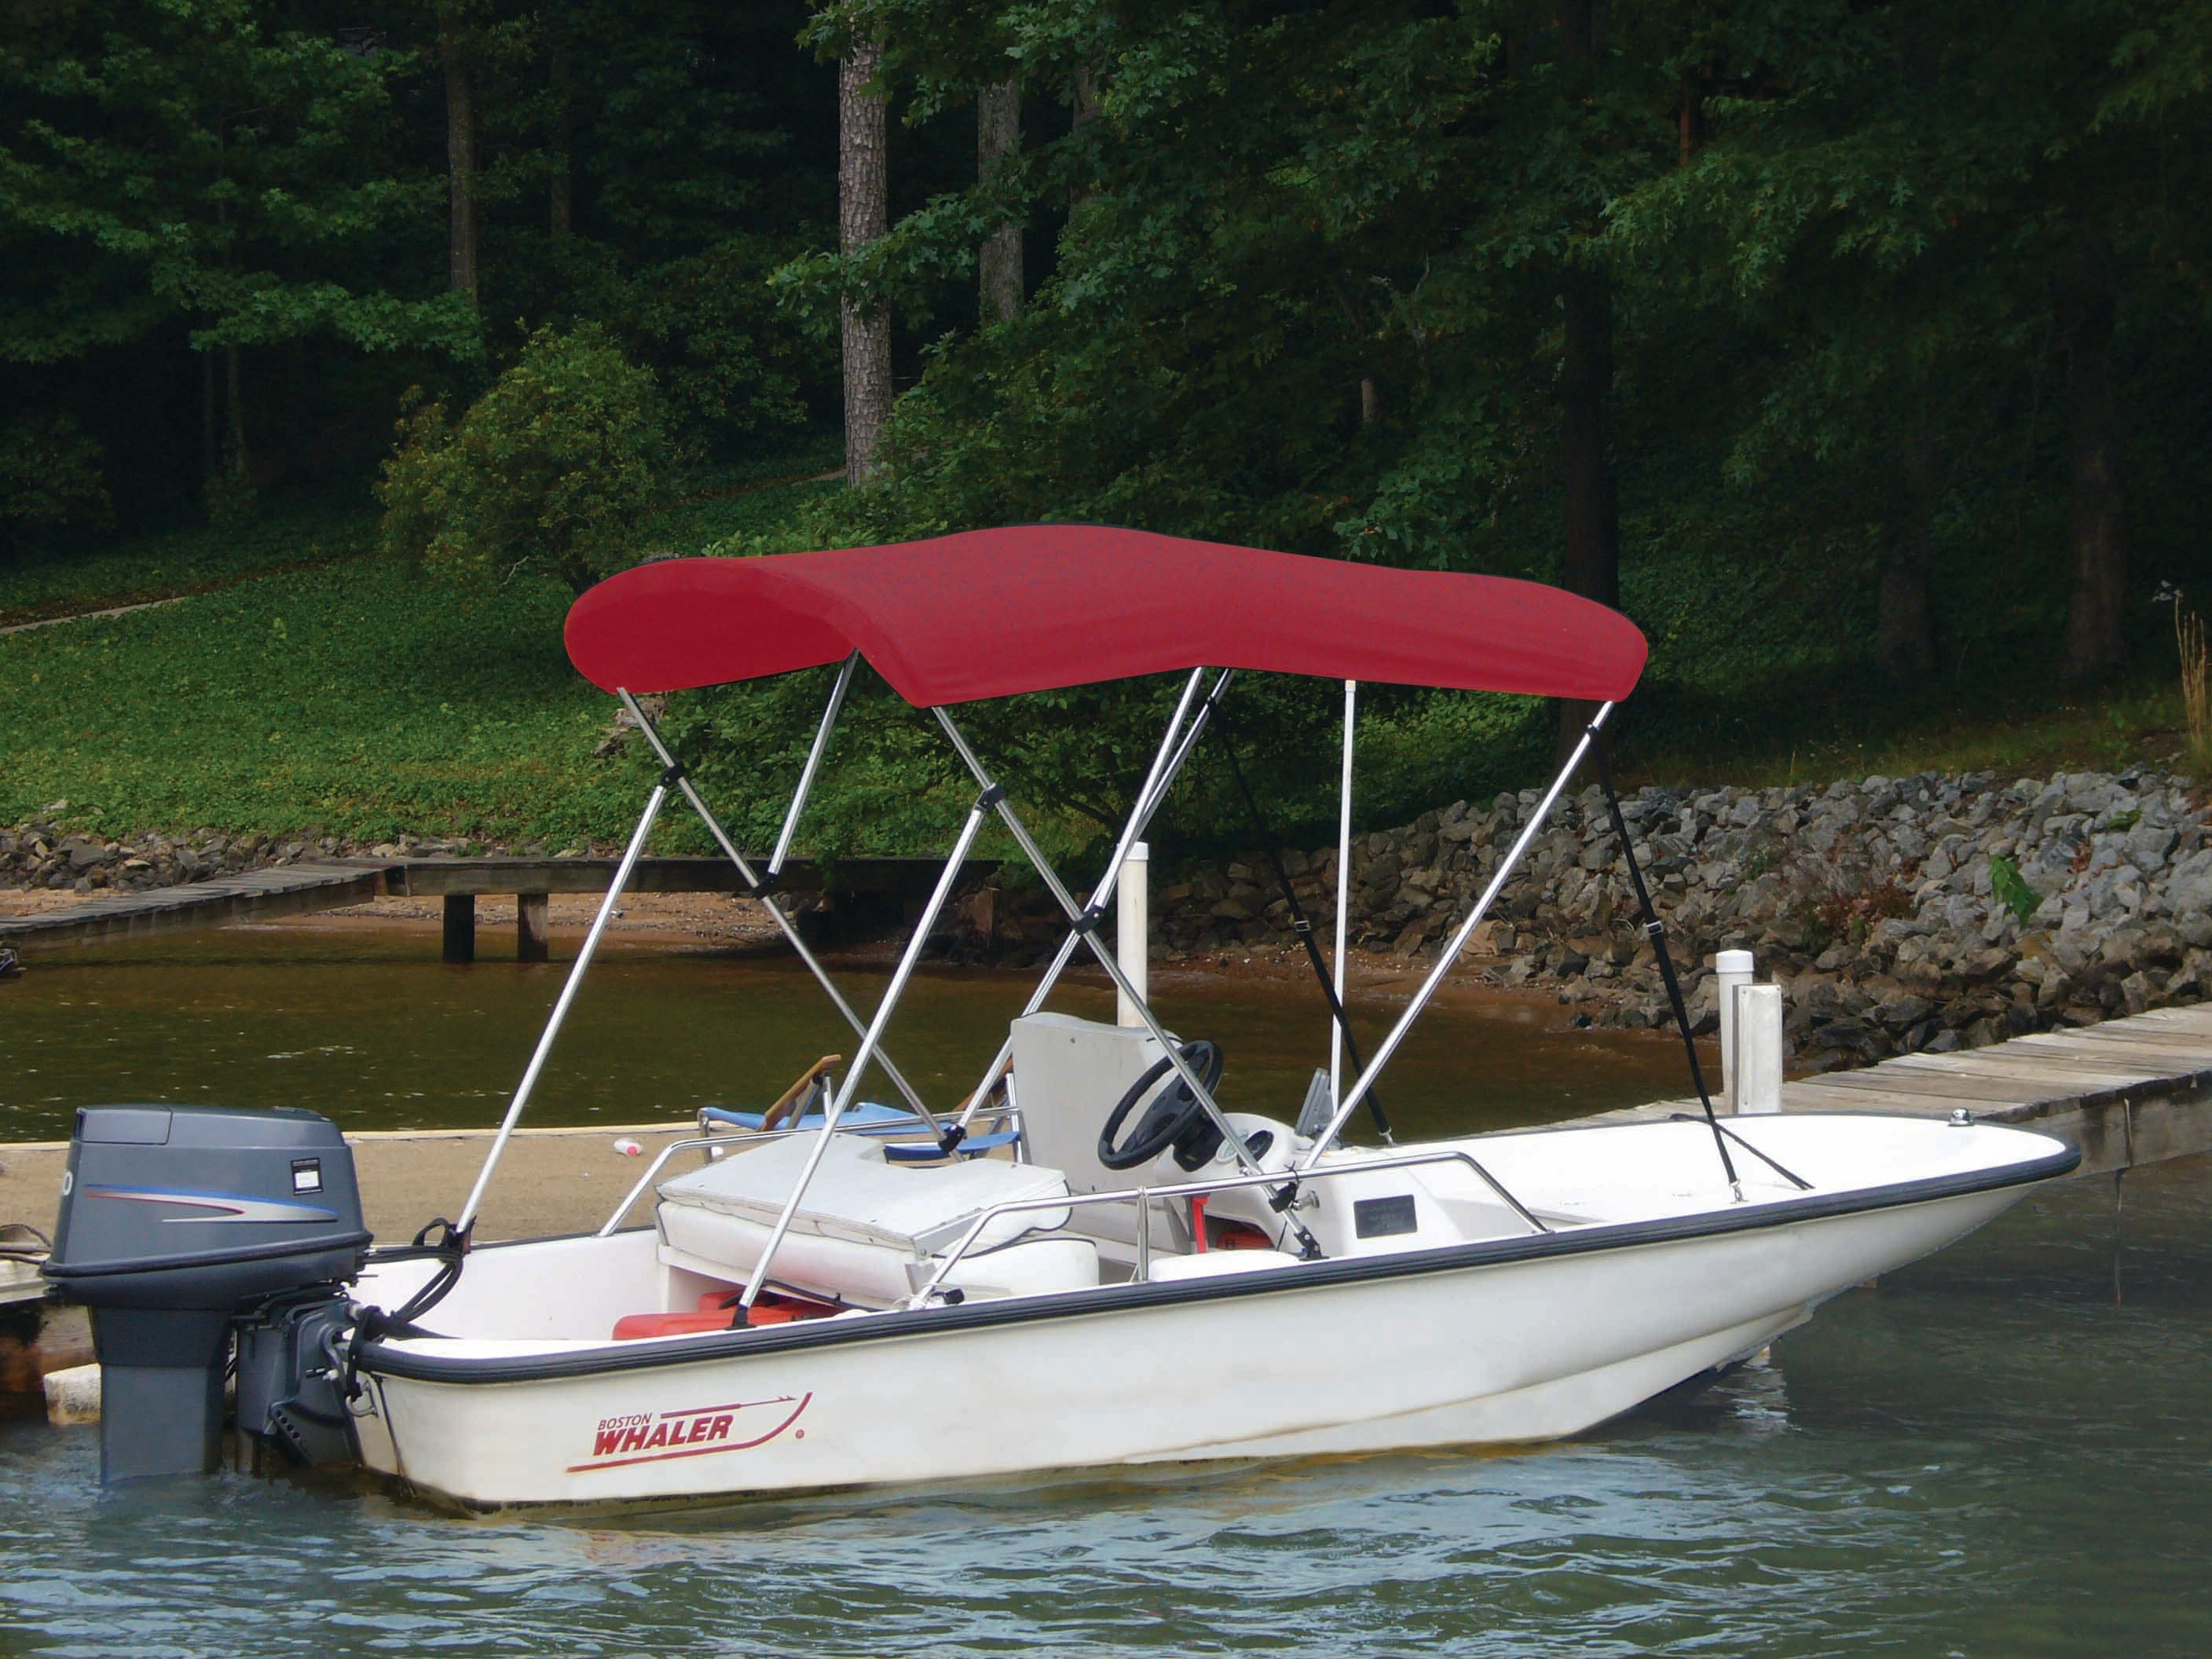 Bimini Top for Whaler, 3 Bow